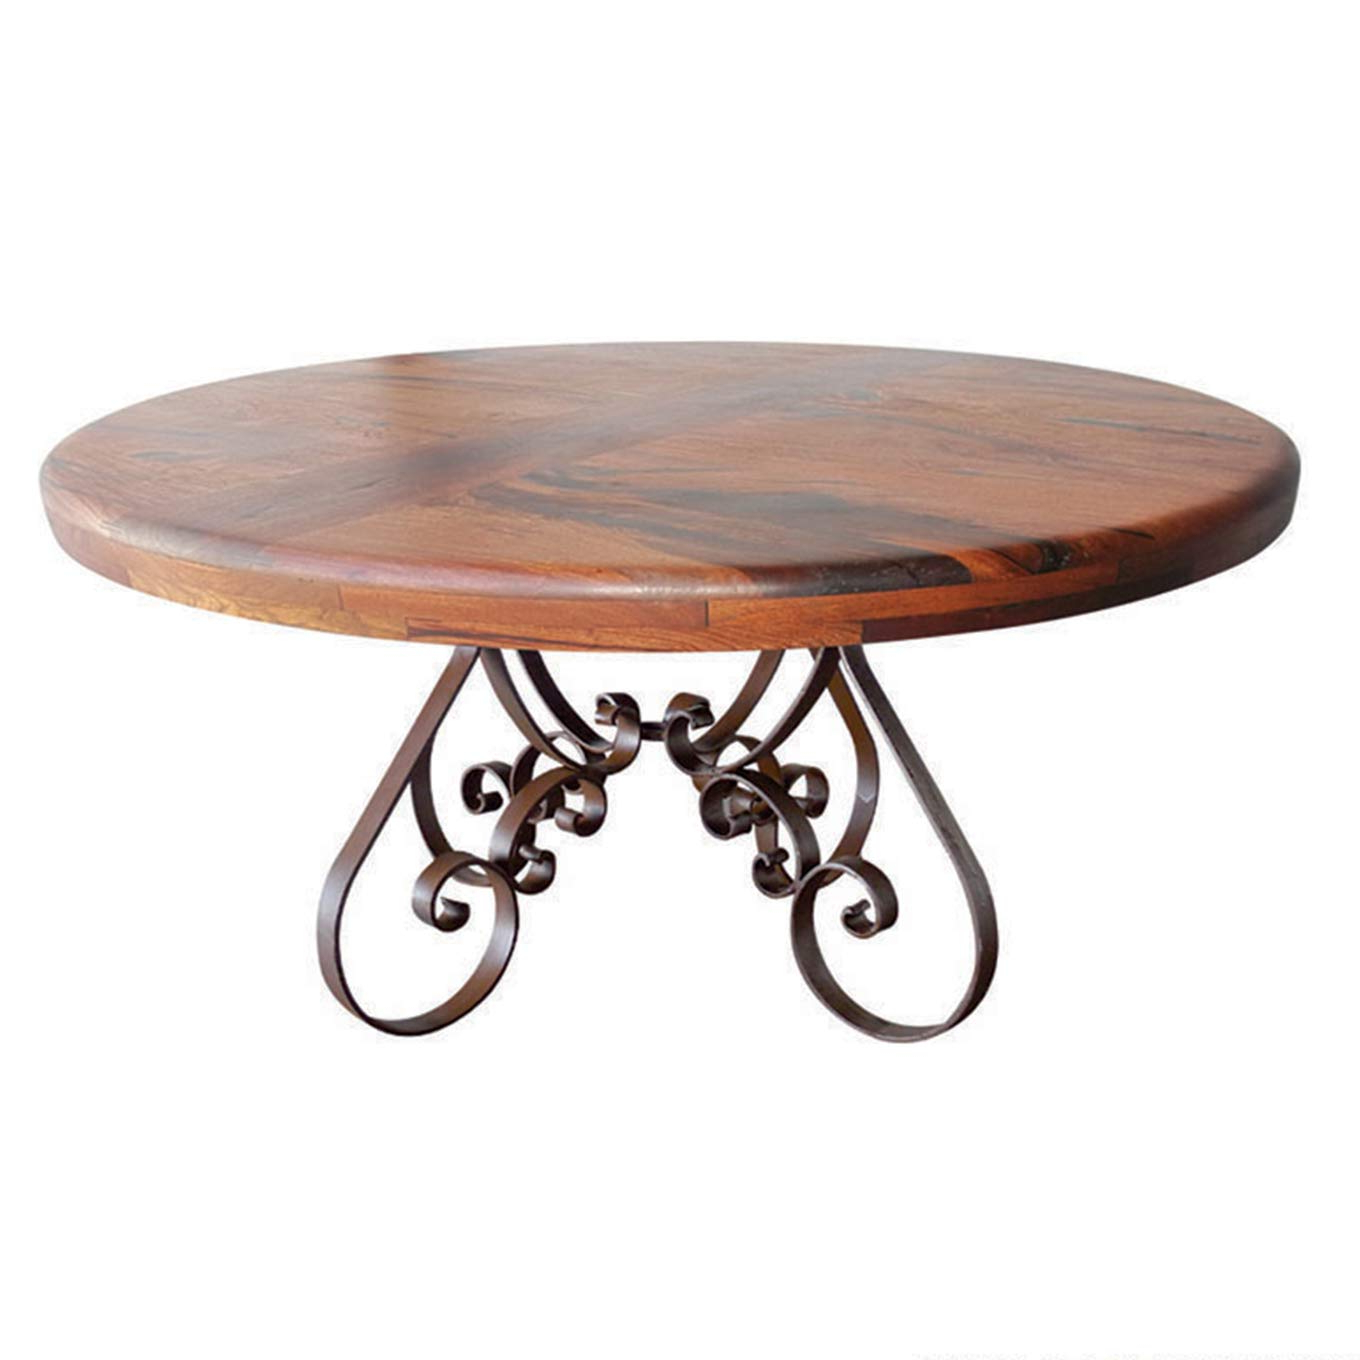 Elegance Large Round Dining Tables Regarding 2017 Amazon – Stunning Dining Table Made Of Elegant Wrought (View 26 of 30)